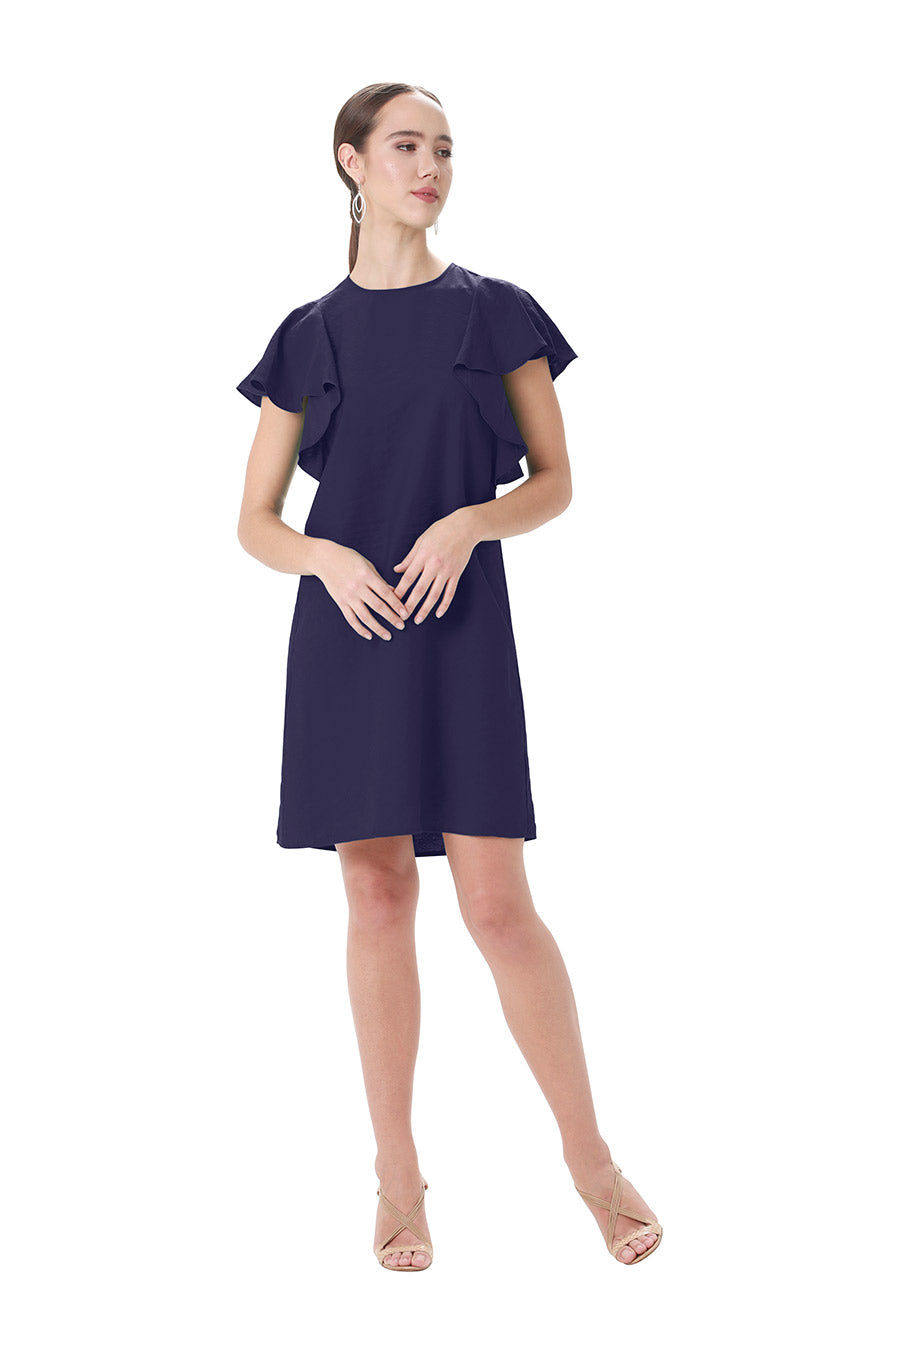 Navy jewel neck ruffle dress